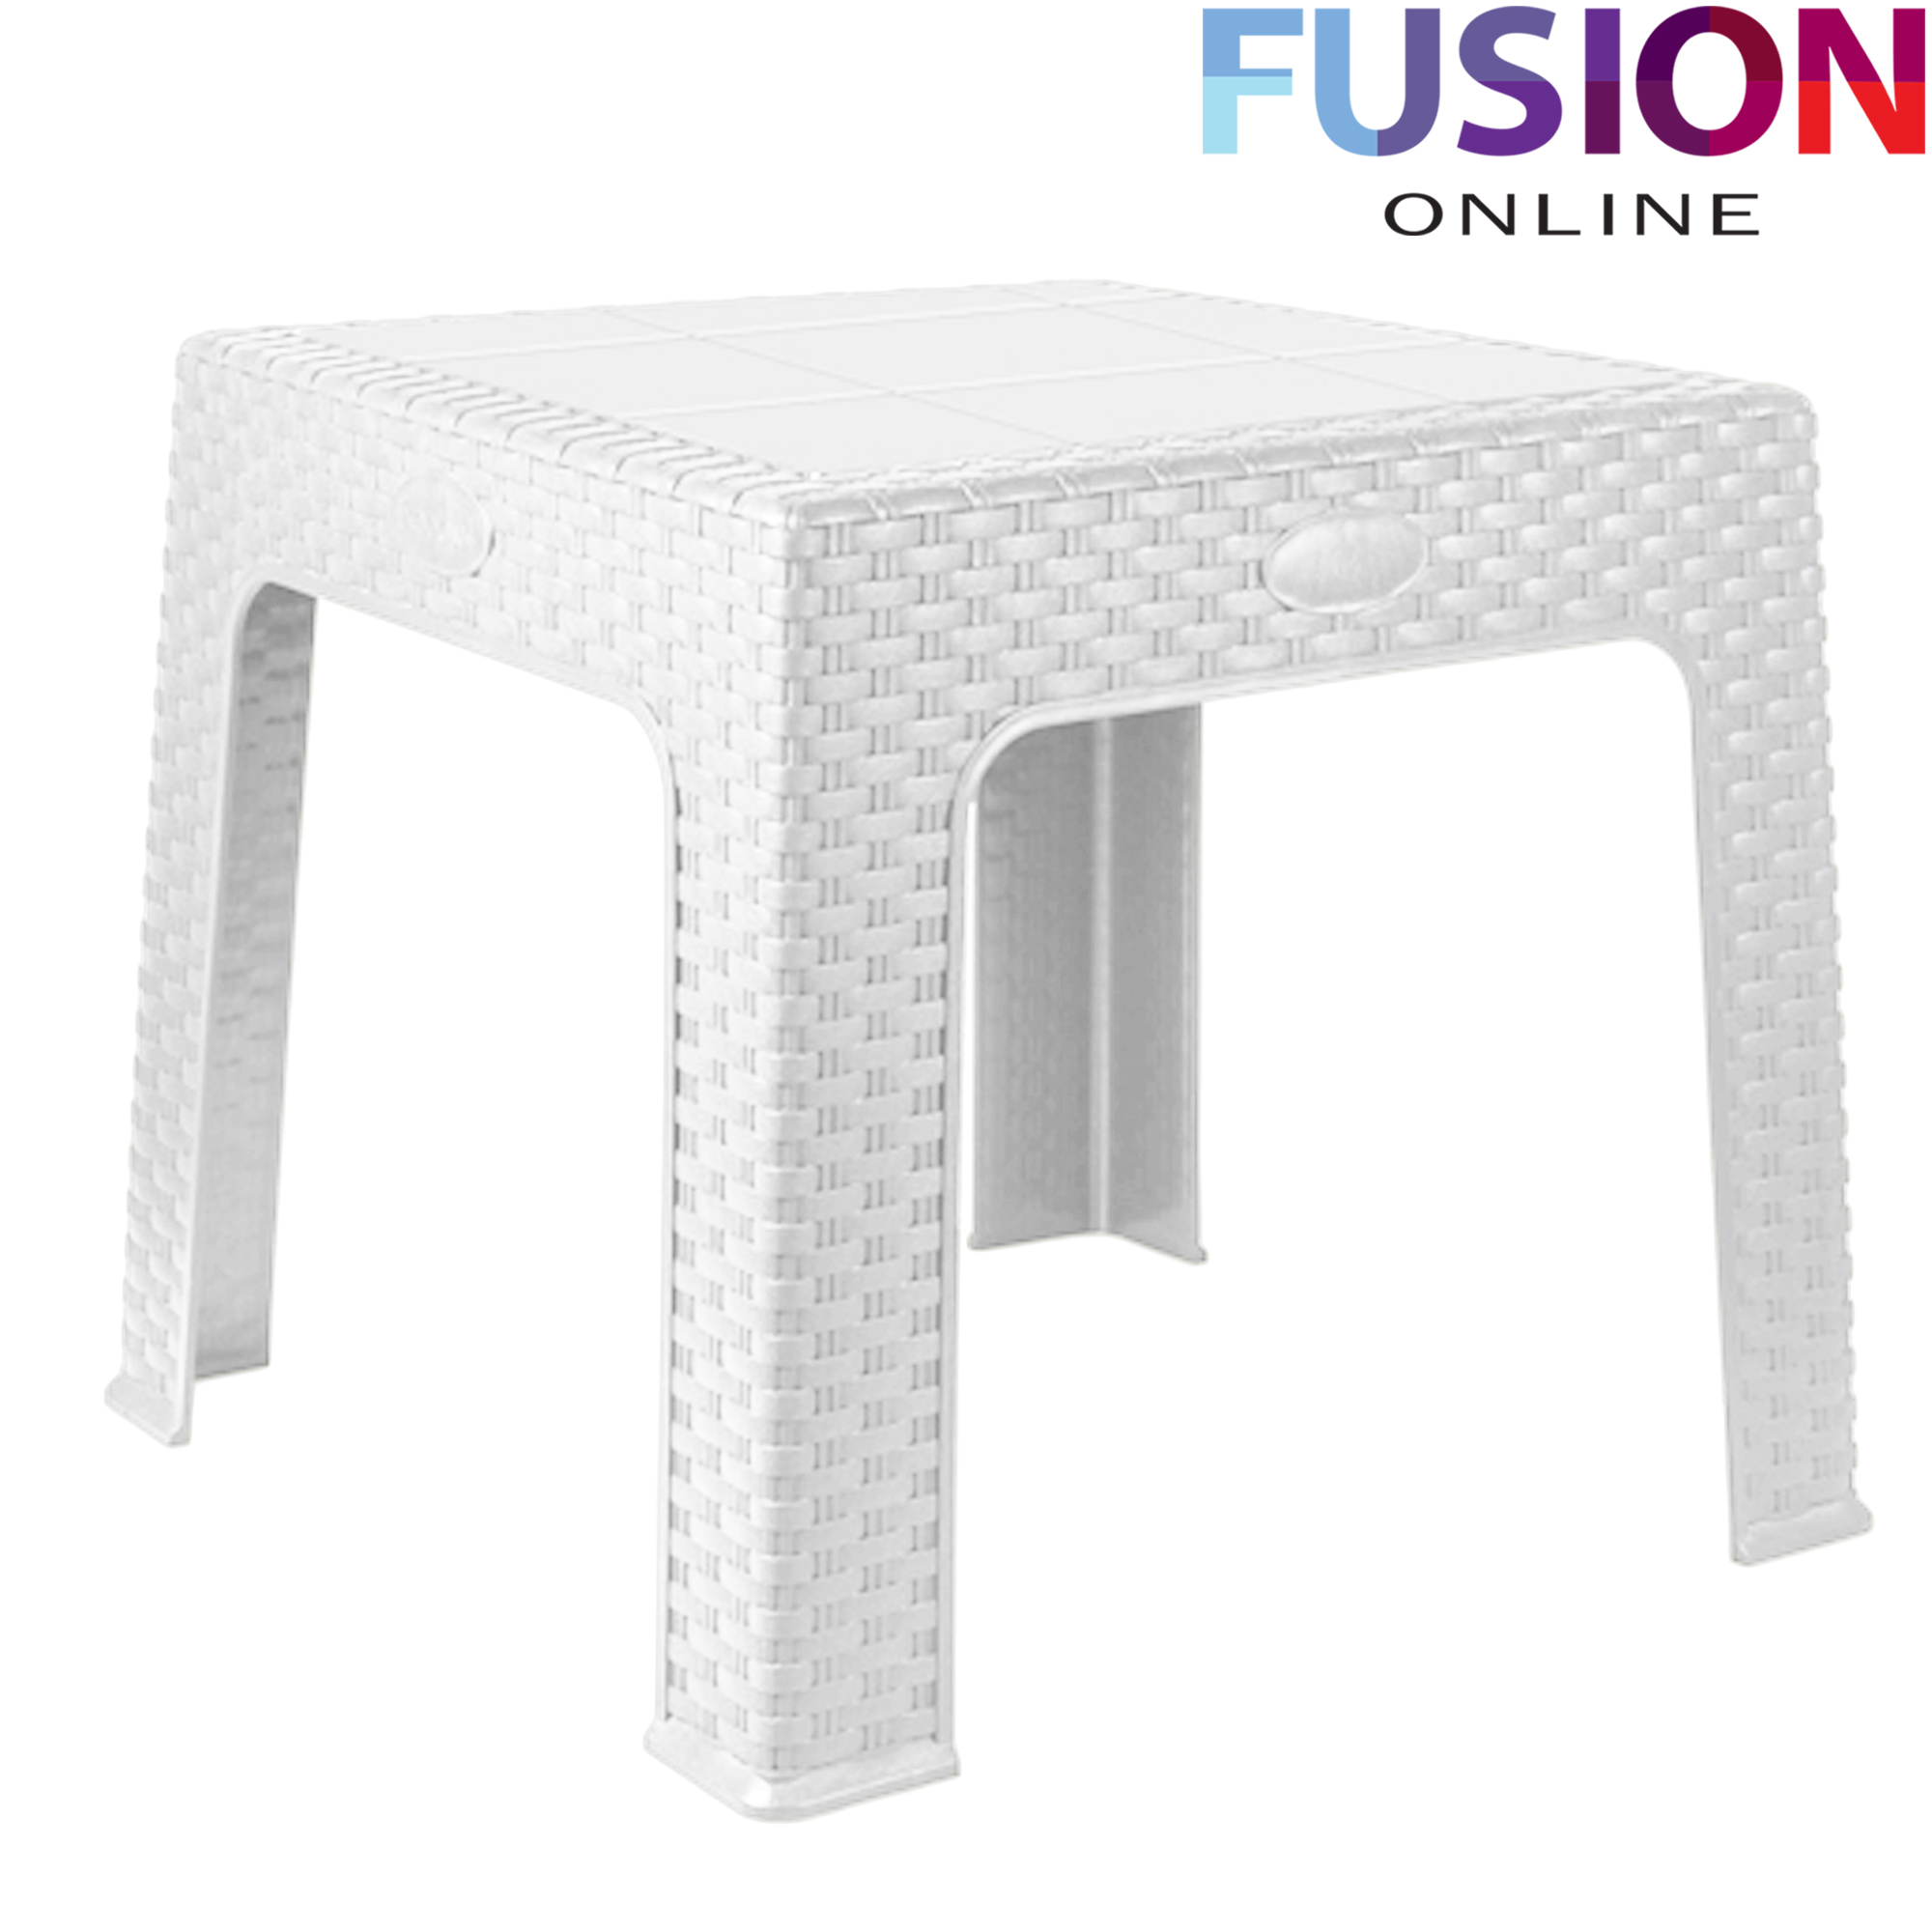 RATTAN STYLE PLASTIC SMALL TABLE OUTDOOR PICNIC PARTY GARDEN BBQ KIDS ACTIVIT -> Petite Table Plastique